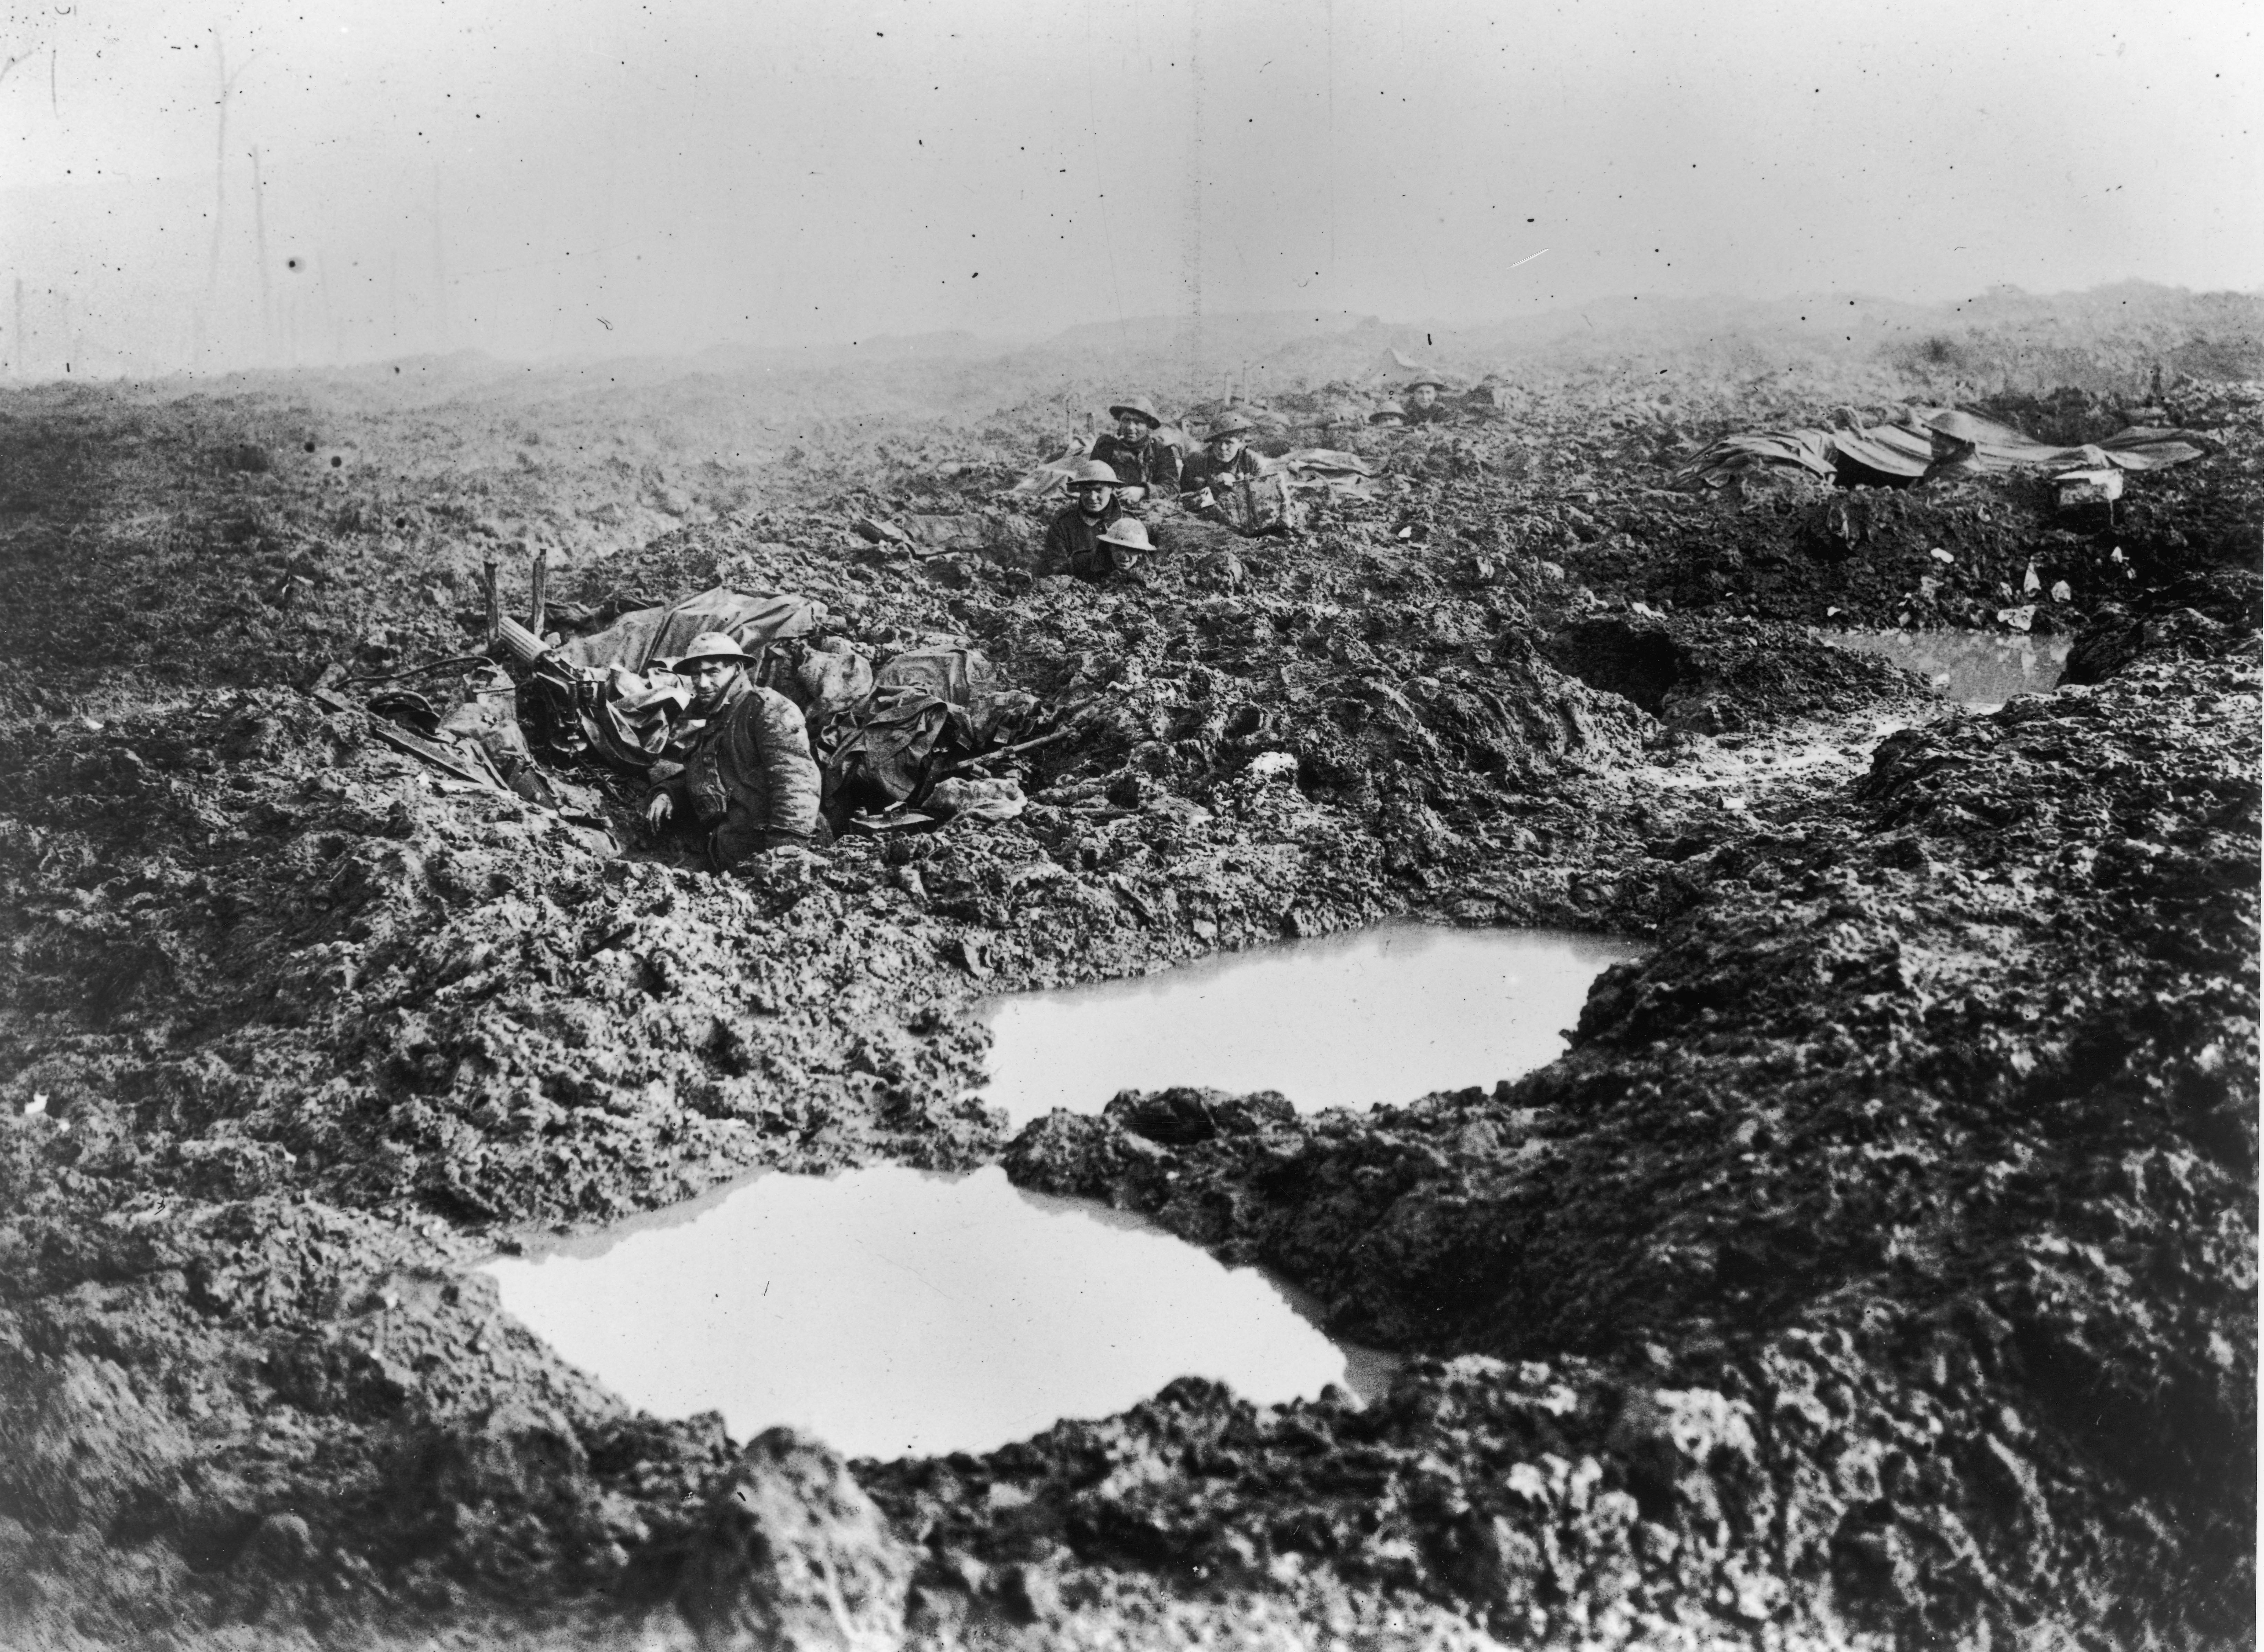 Soldiers in the Trenches during the Battle of Passchendaele on November 1, 1917.